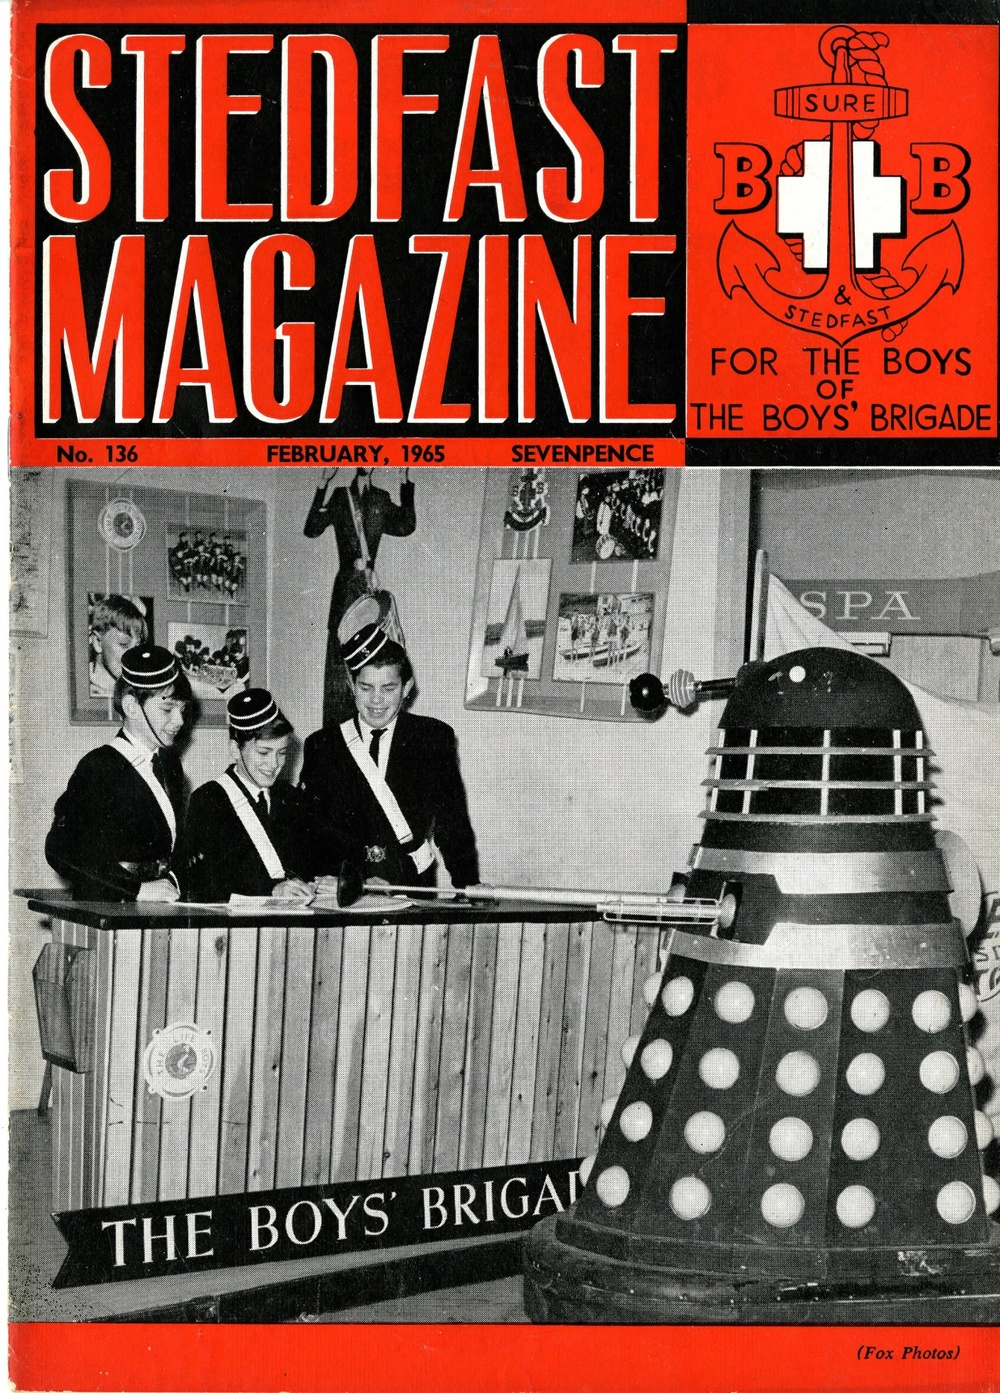 Stedfast Magazine, (the Boys' Brigade magazine), February 1965 with cover featuring a Dalek from the Daily Mail Schoolboys and Girls Exhibition